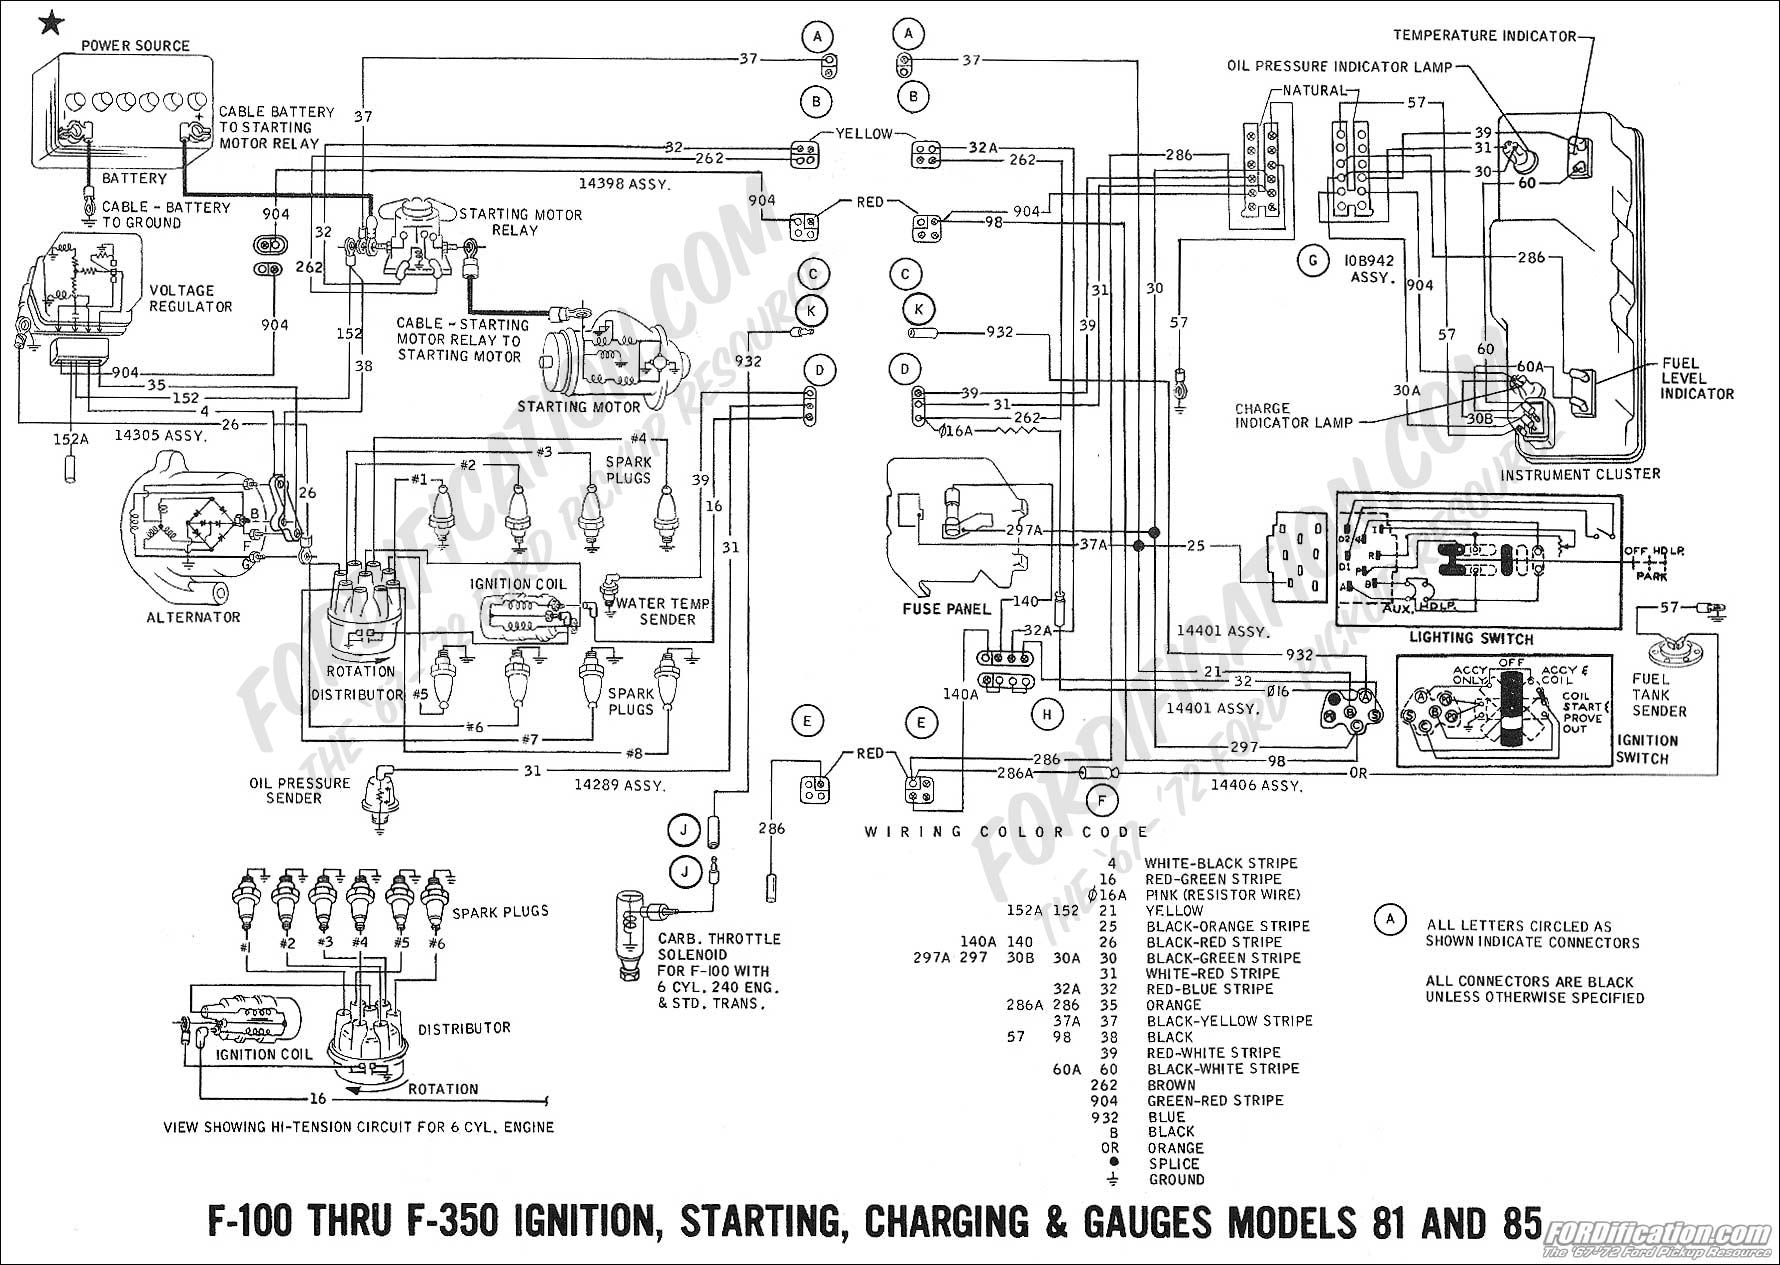 1969 f100 turn signal wiring diagram